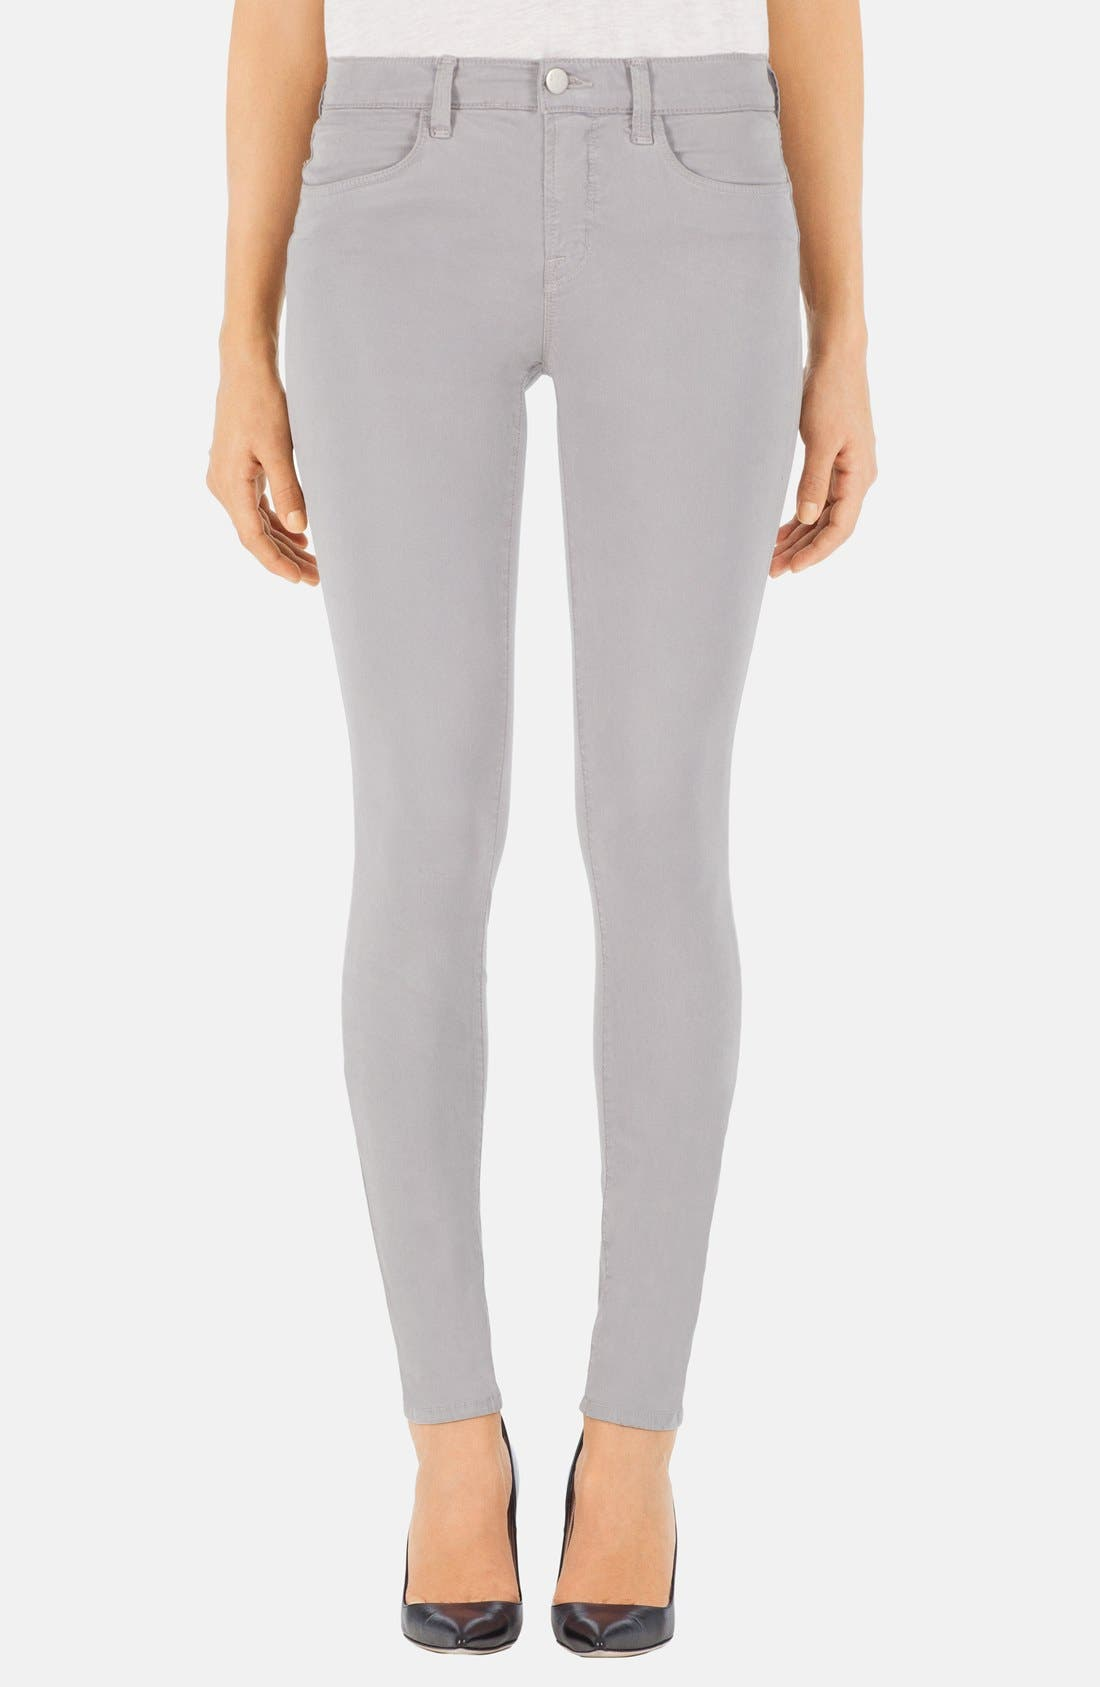 Alternate Image 1 Selected - J Brand '485' Mid Rise Super Skinny Jeans (Limestone)